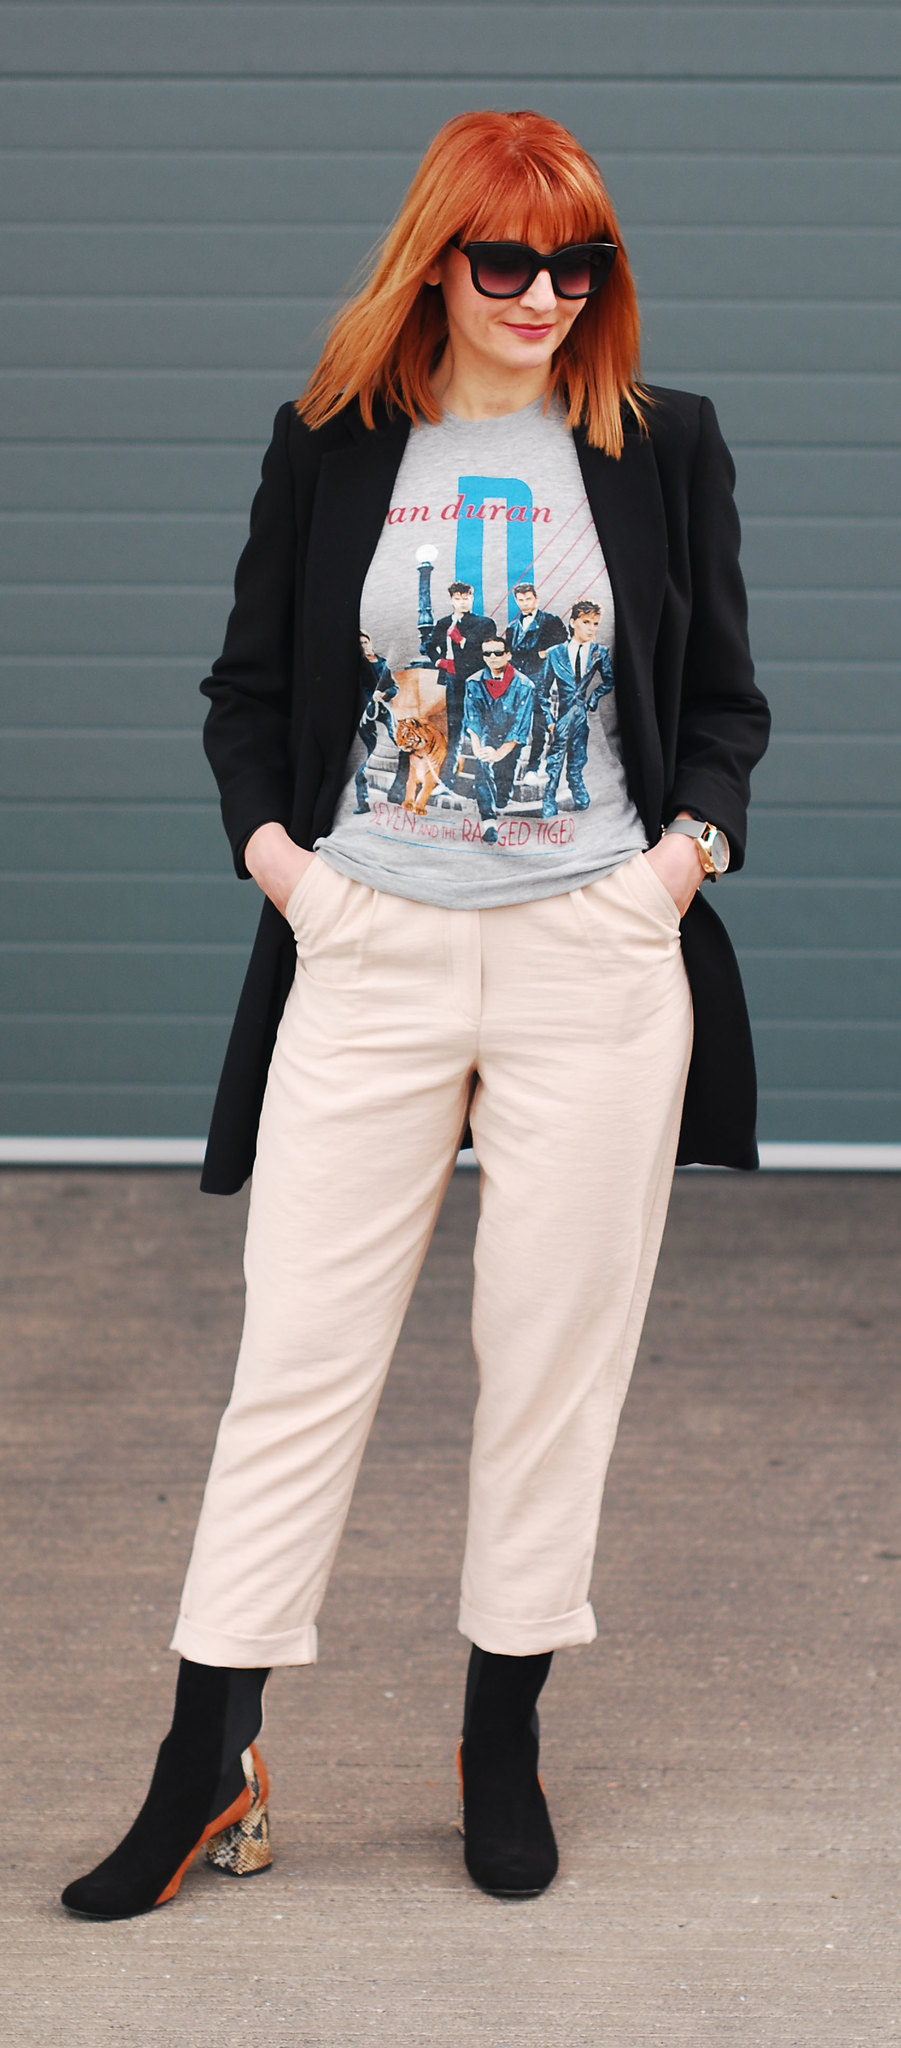 Styling an original band t-shirt: Longline black blazer  vintage Duran Duran tour t-shirt  taupe peg leg menswear-style trousers  snakeskin and panelled suede Finery ankle boots | Not Dressed As Lamb, over 40 style